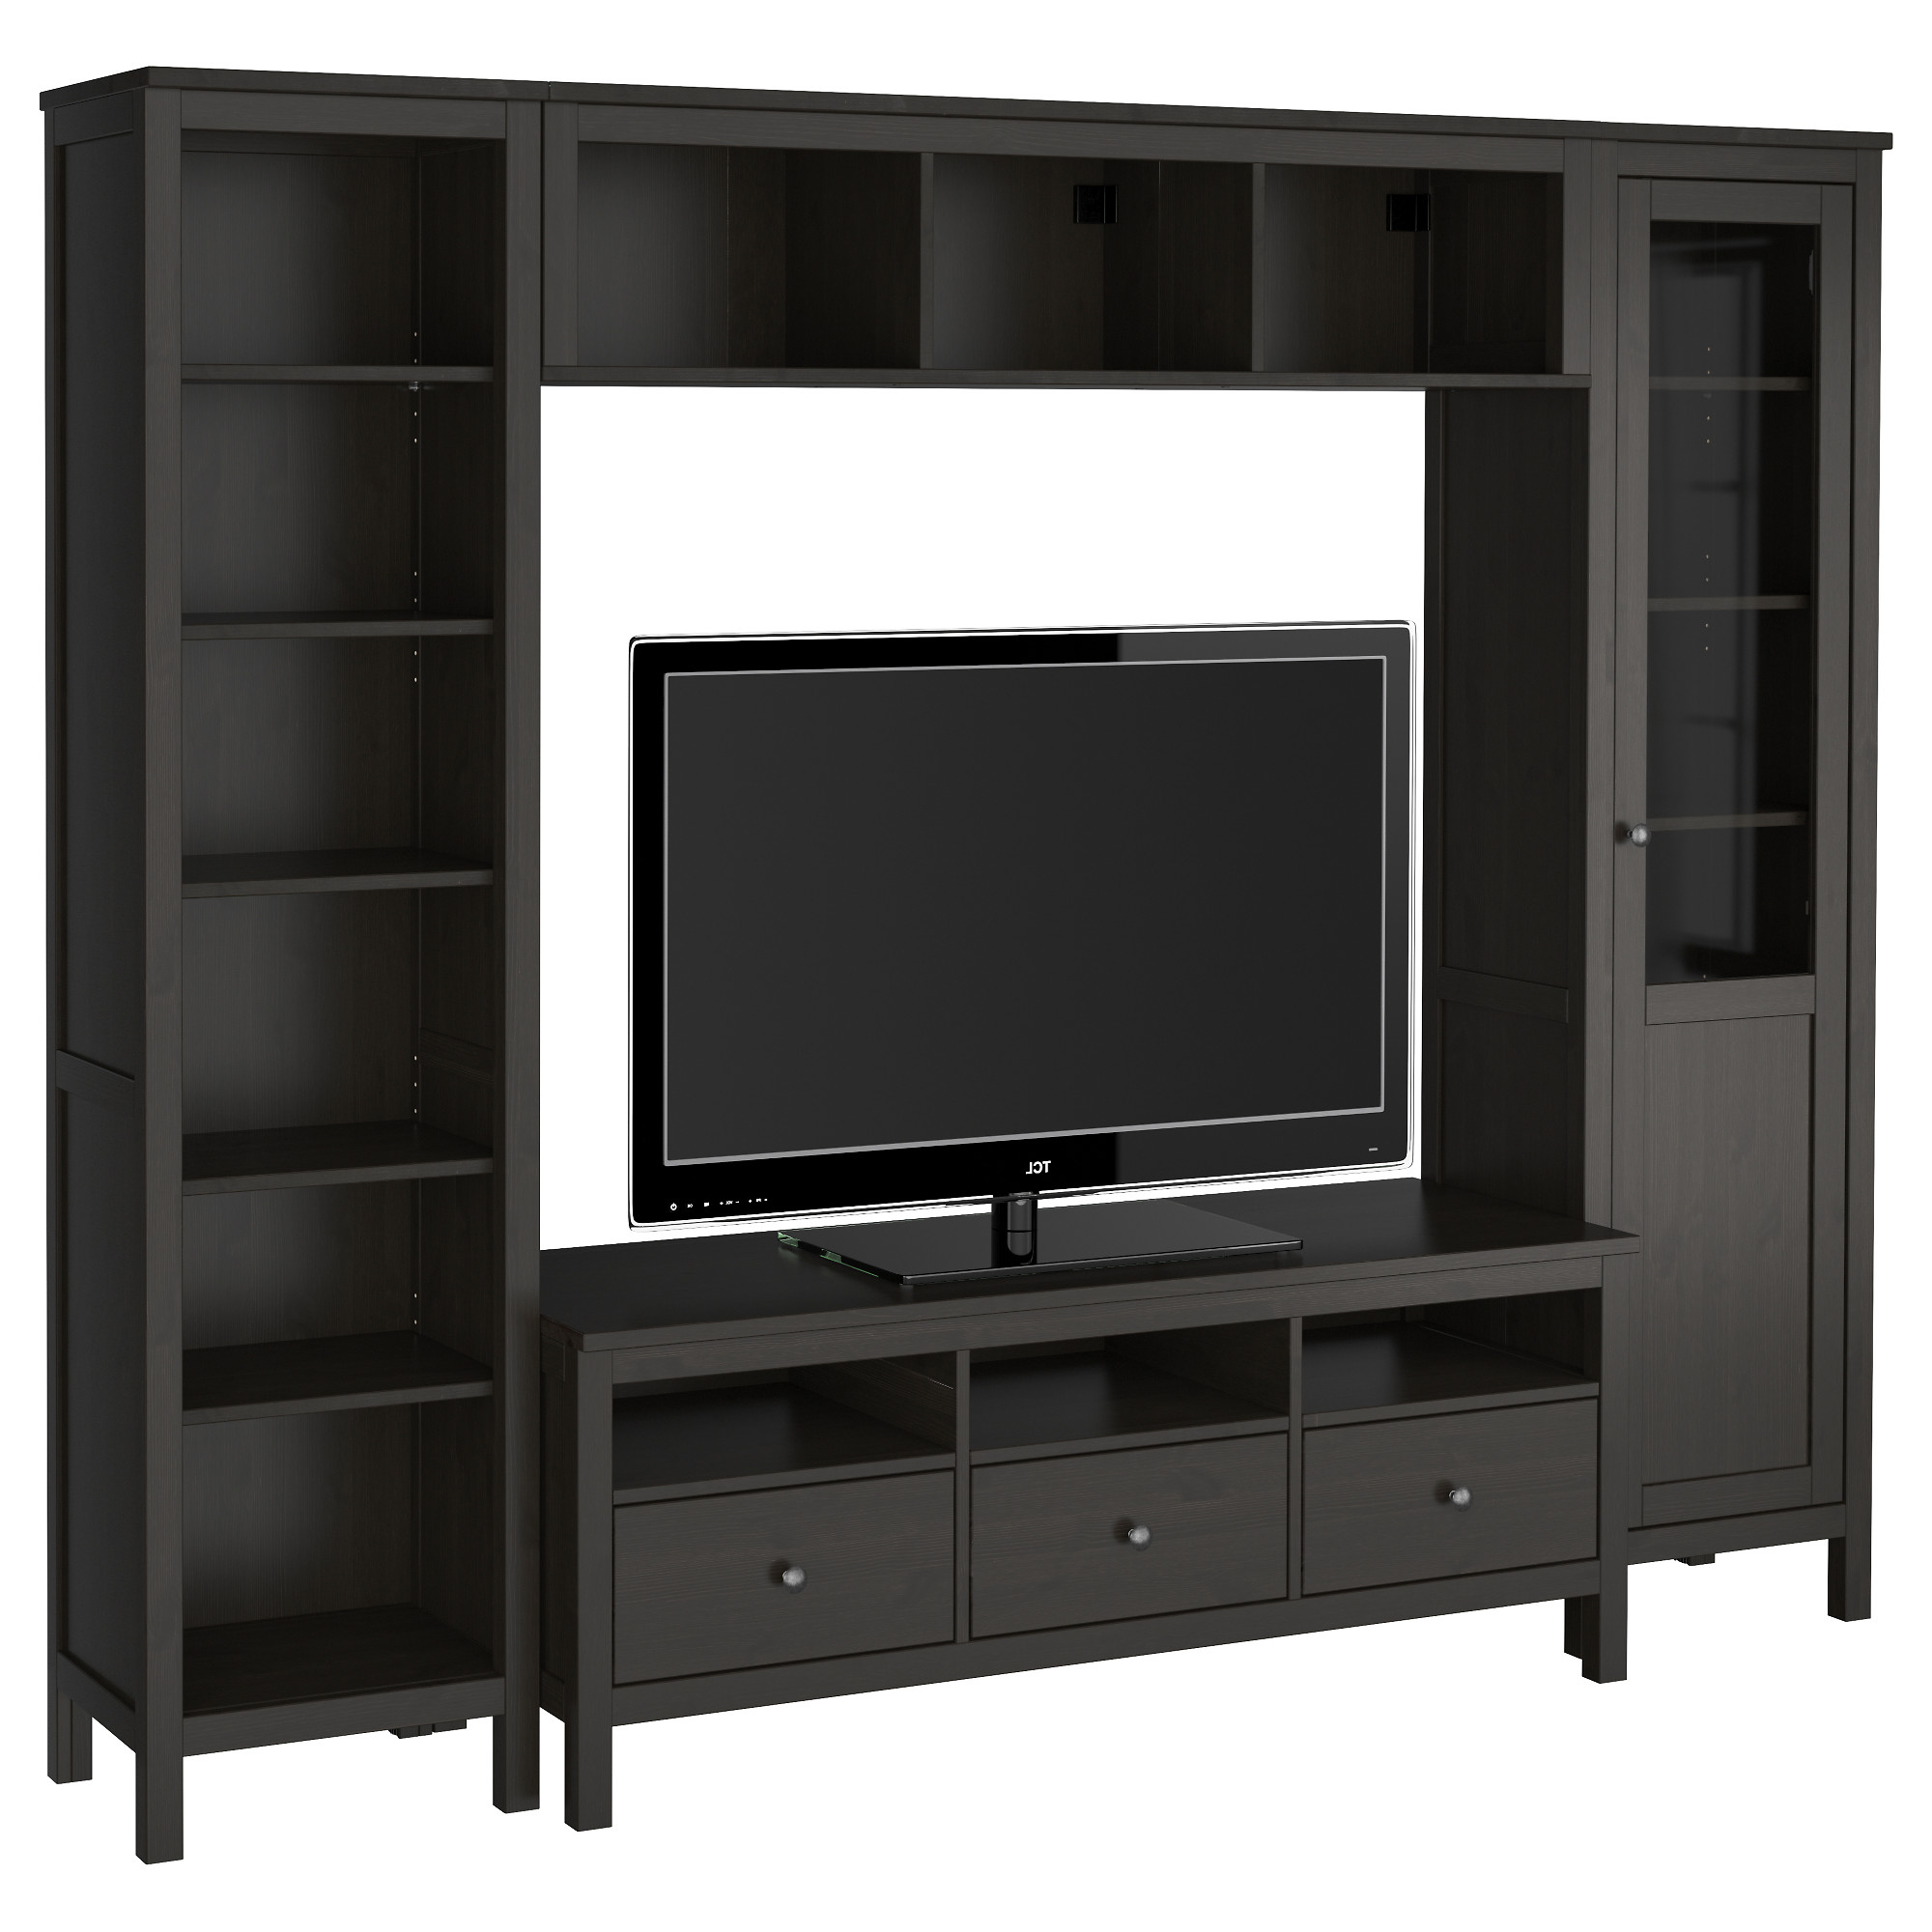 Most Popular Tv Armoire For Flat Screens Ikea 70 Inch Stand 75 With Mount Best In Tv Stands For 70 Flat Screen (View 8 of 20)